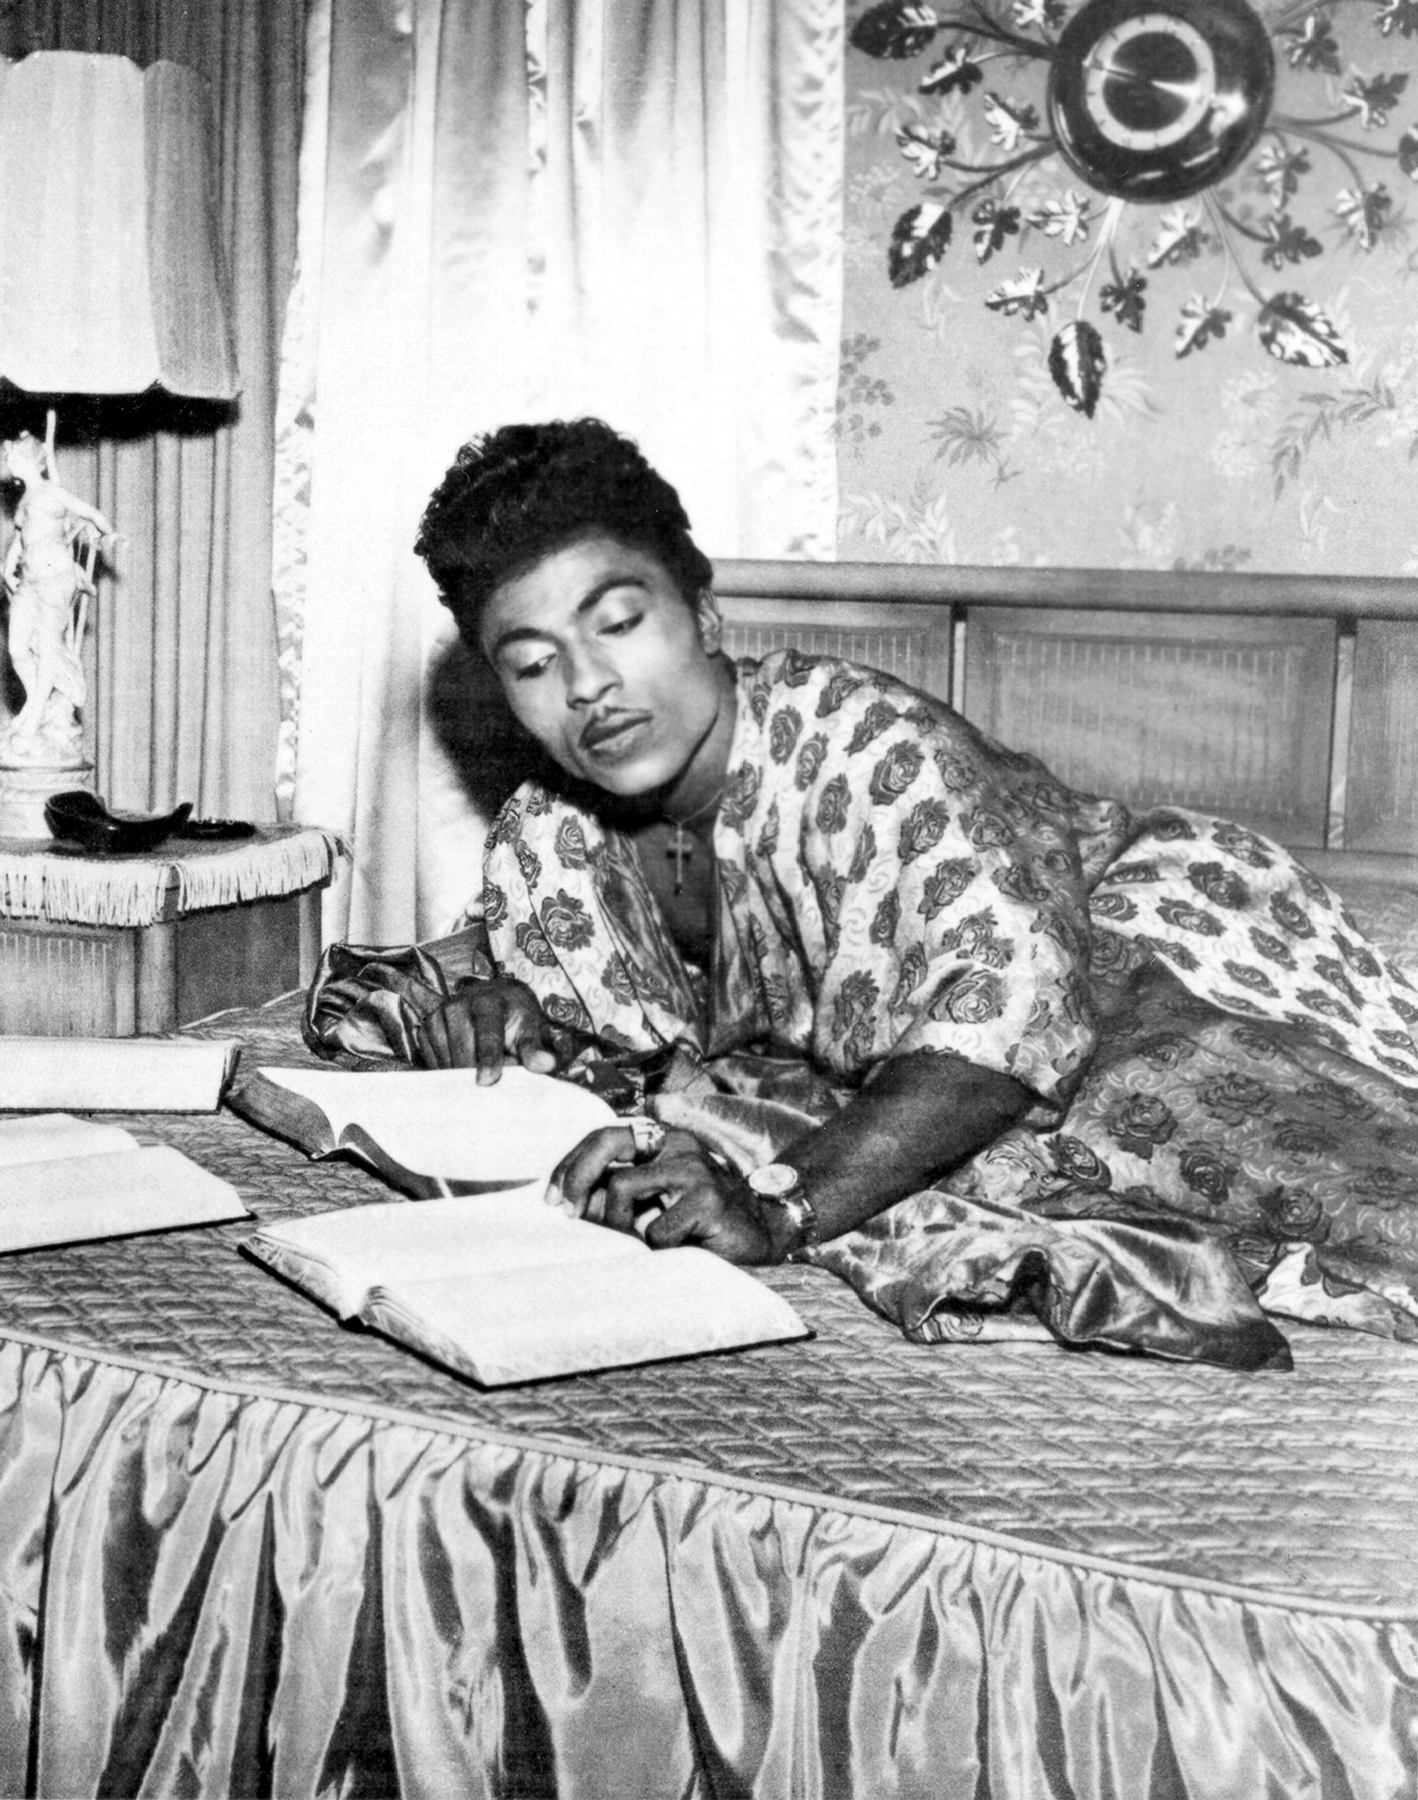 1958: Rock and roll singer Little Richard studies the bible on his bed in 1958 as he quit rock and roll to attend bible school. (Photo by Michael Ochs Archives/Getty Images)